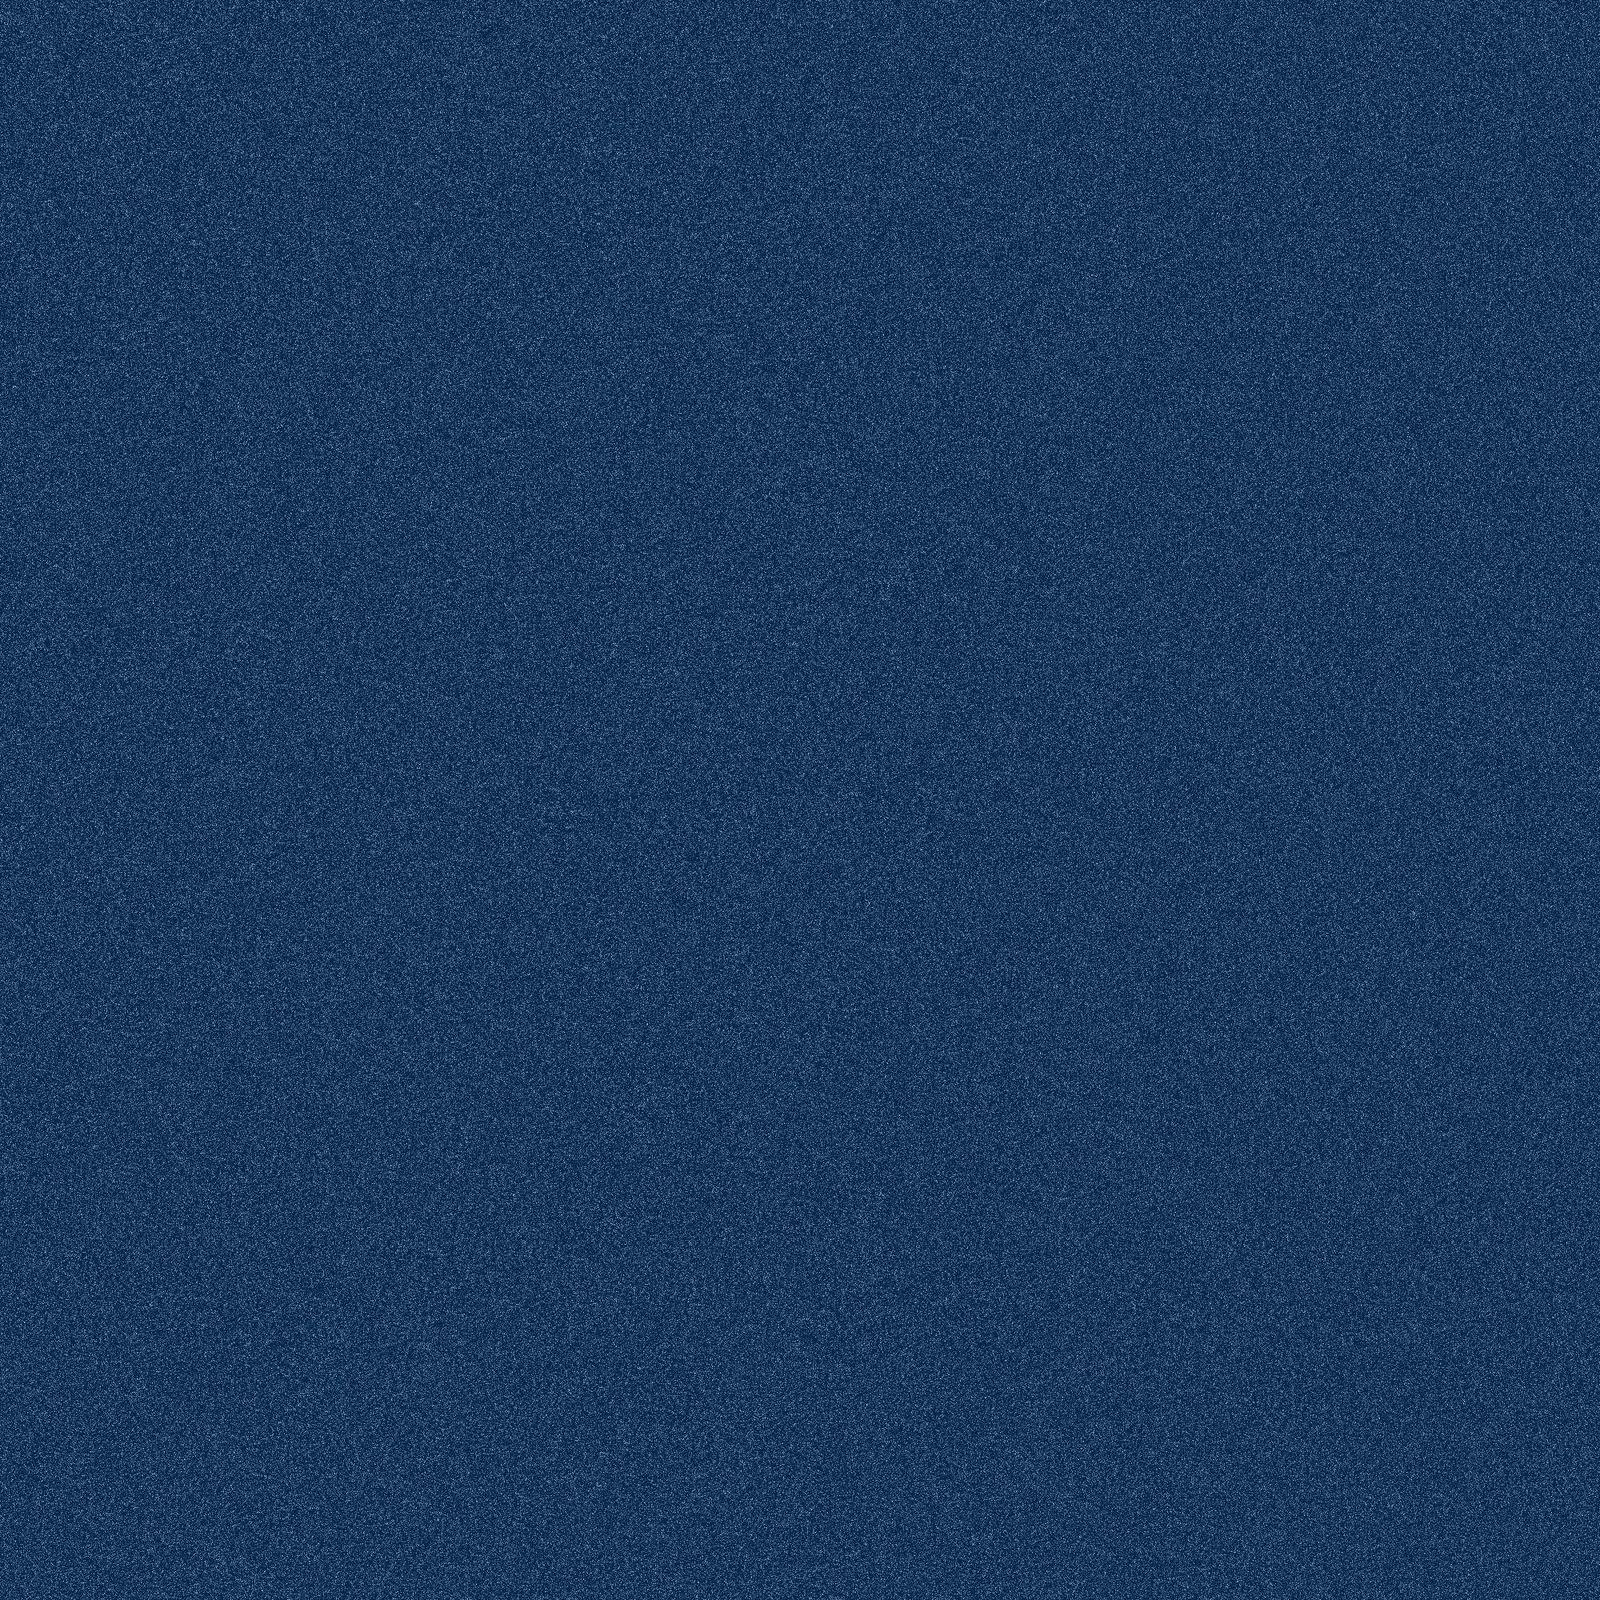 Dark Blue Textured Backgrounds Hd Pictures 4 HD Wallpapers ...